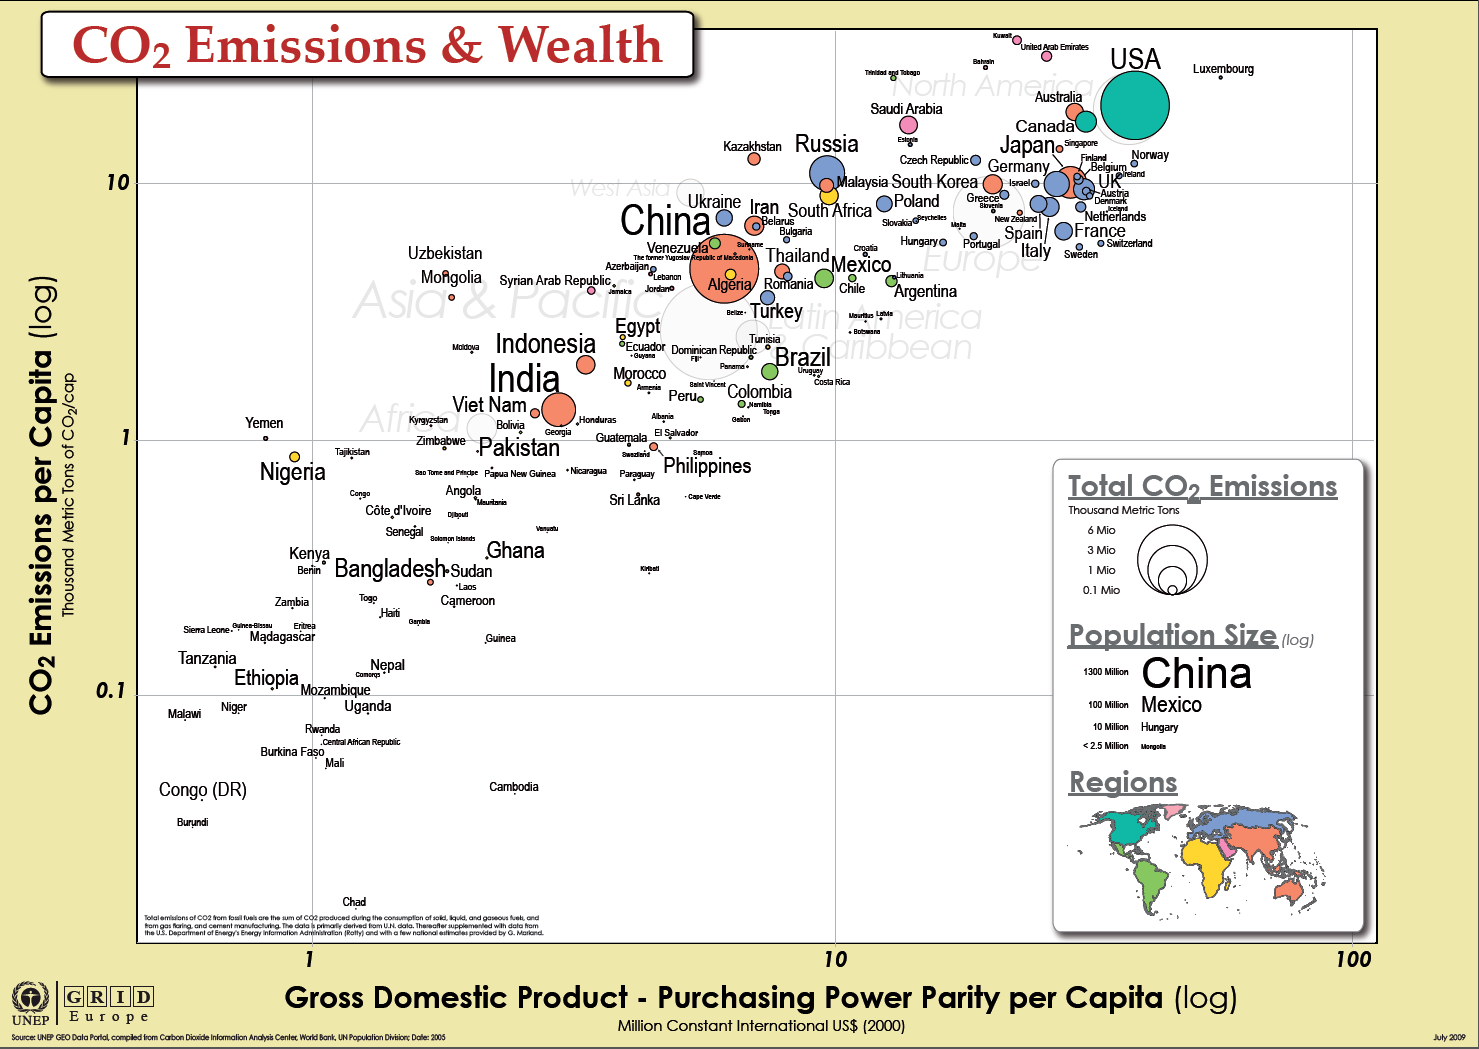 http://jonova.s3.amazonaws.com/graphs/co2/co2-emissions-gdp.png